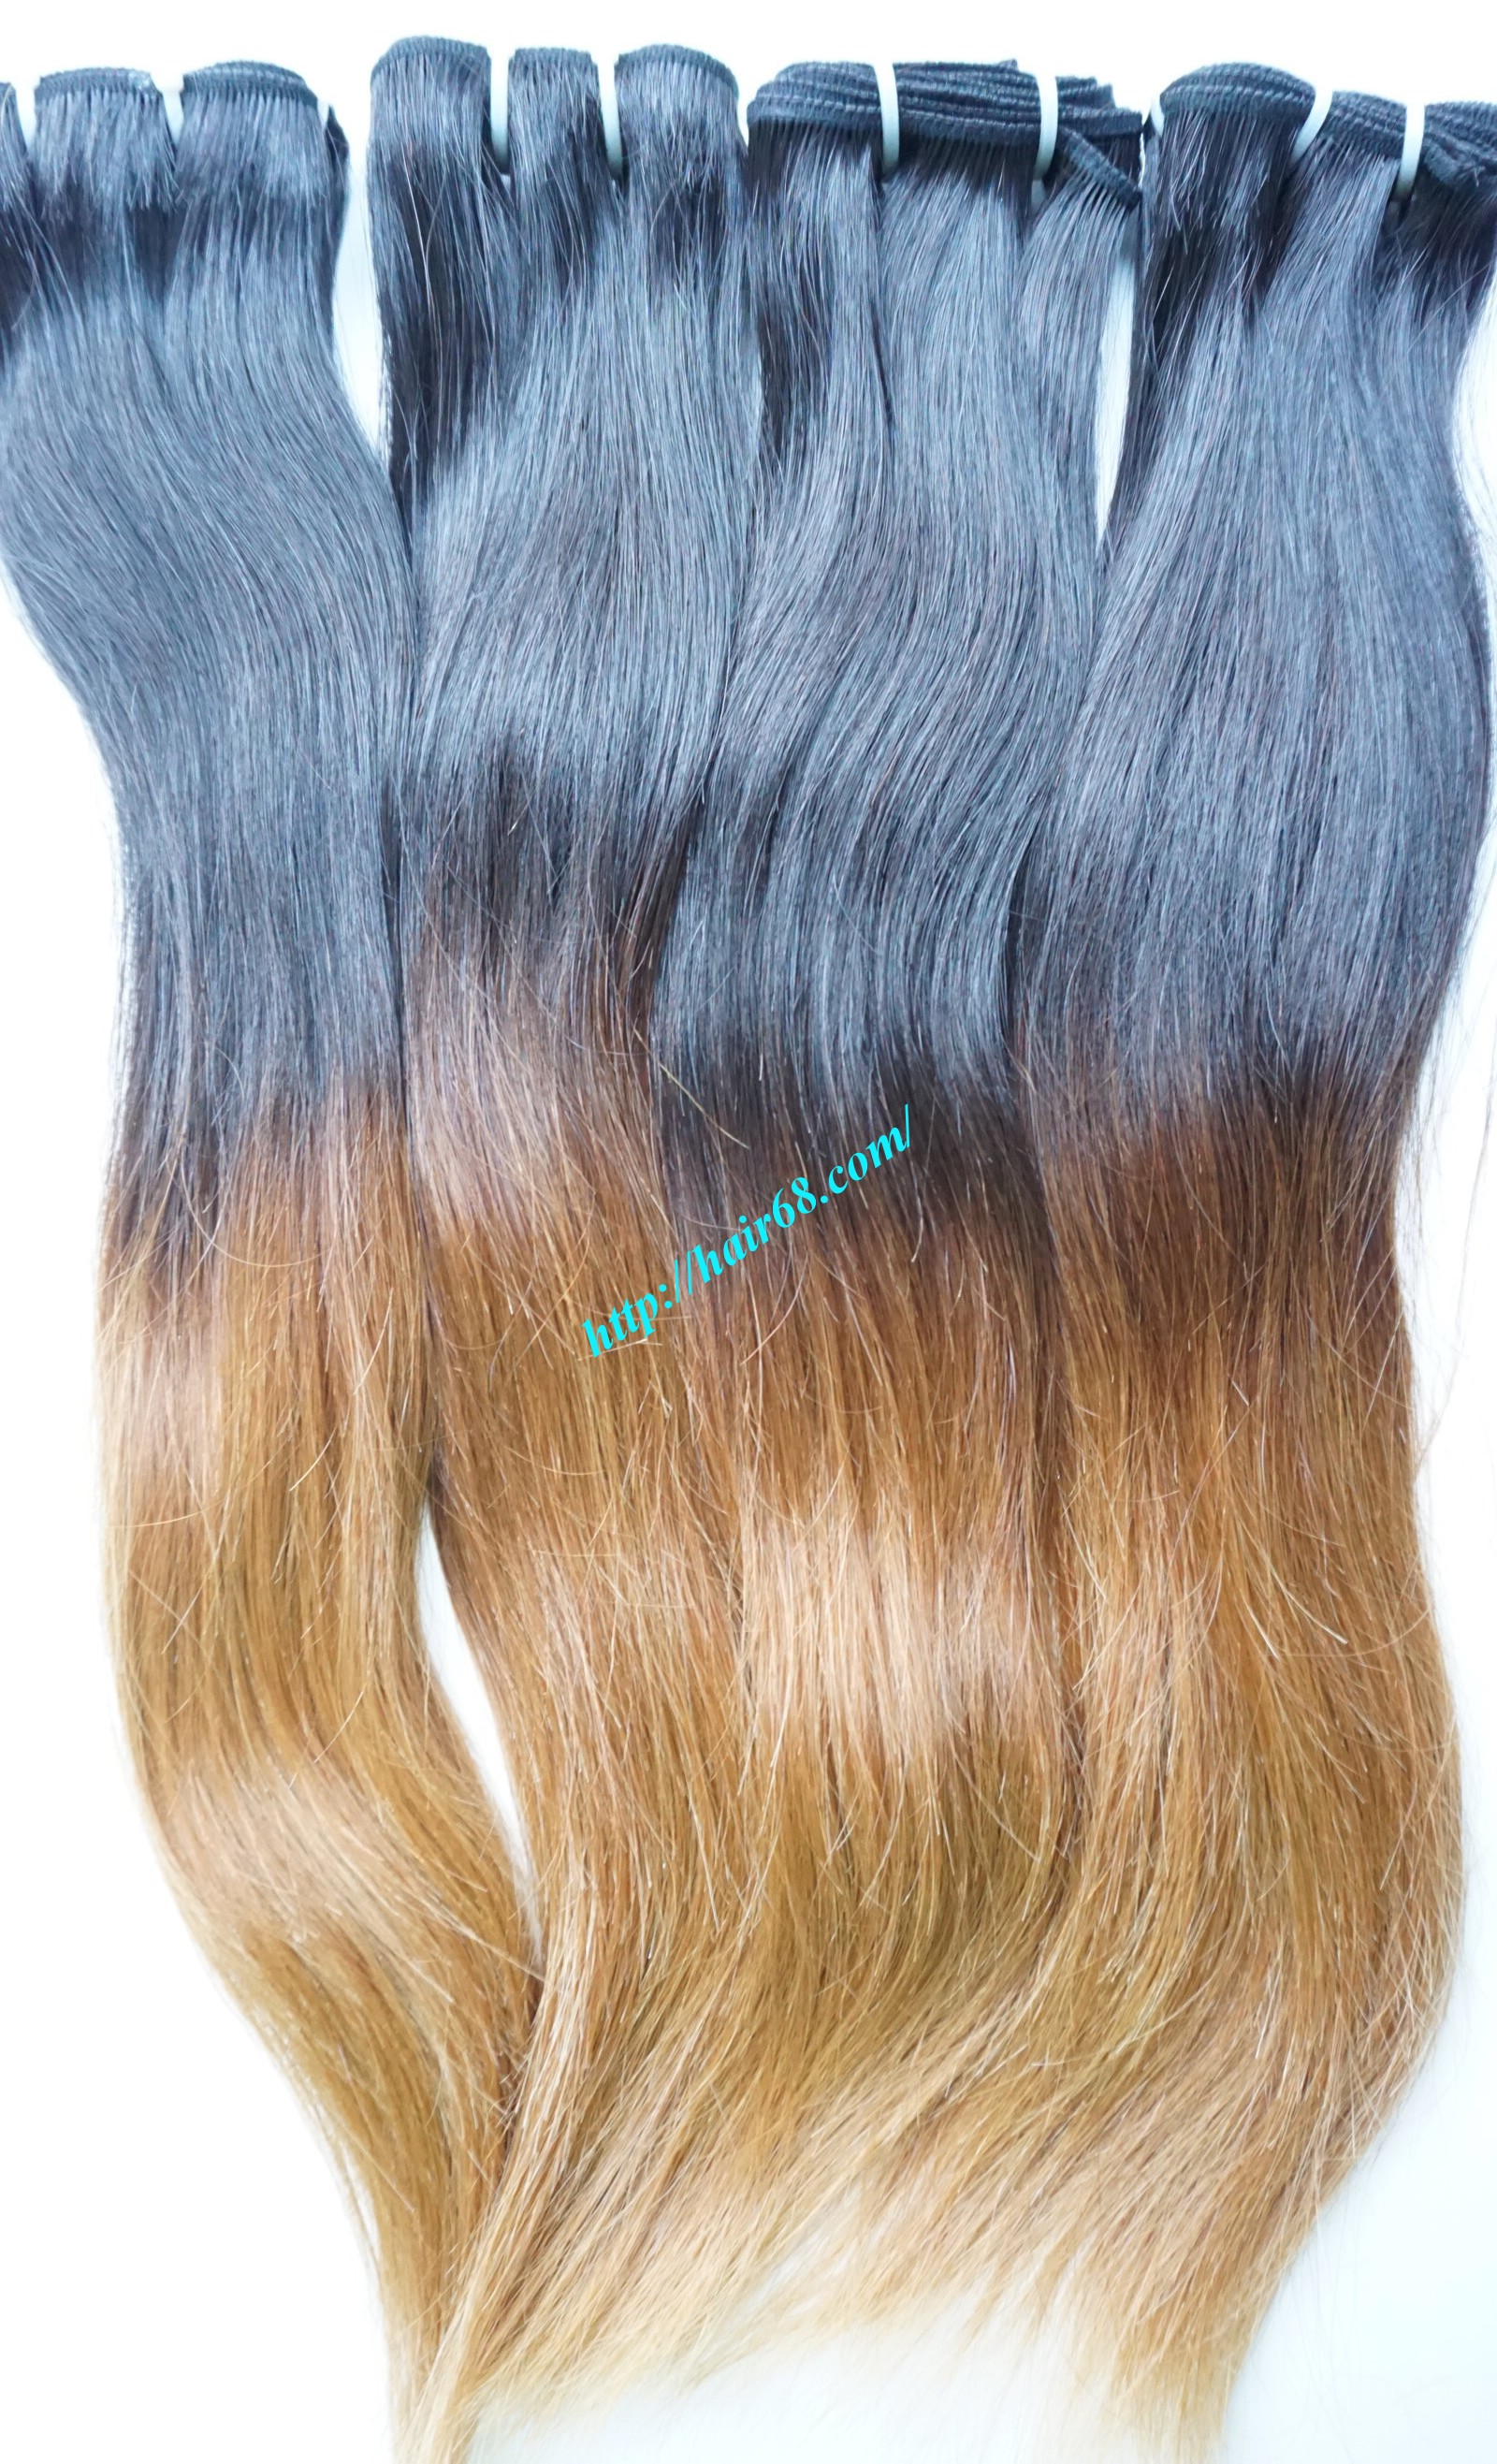 18 inch ombre hair extensions vietnam hair 11